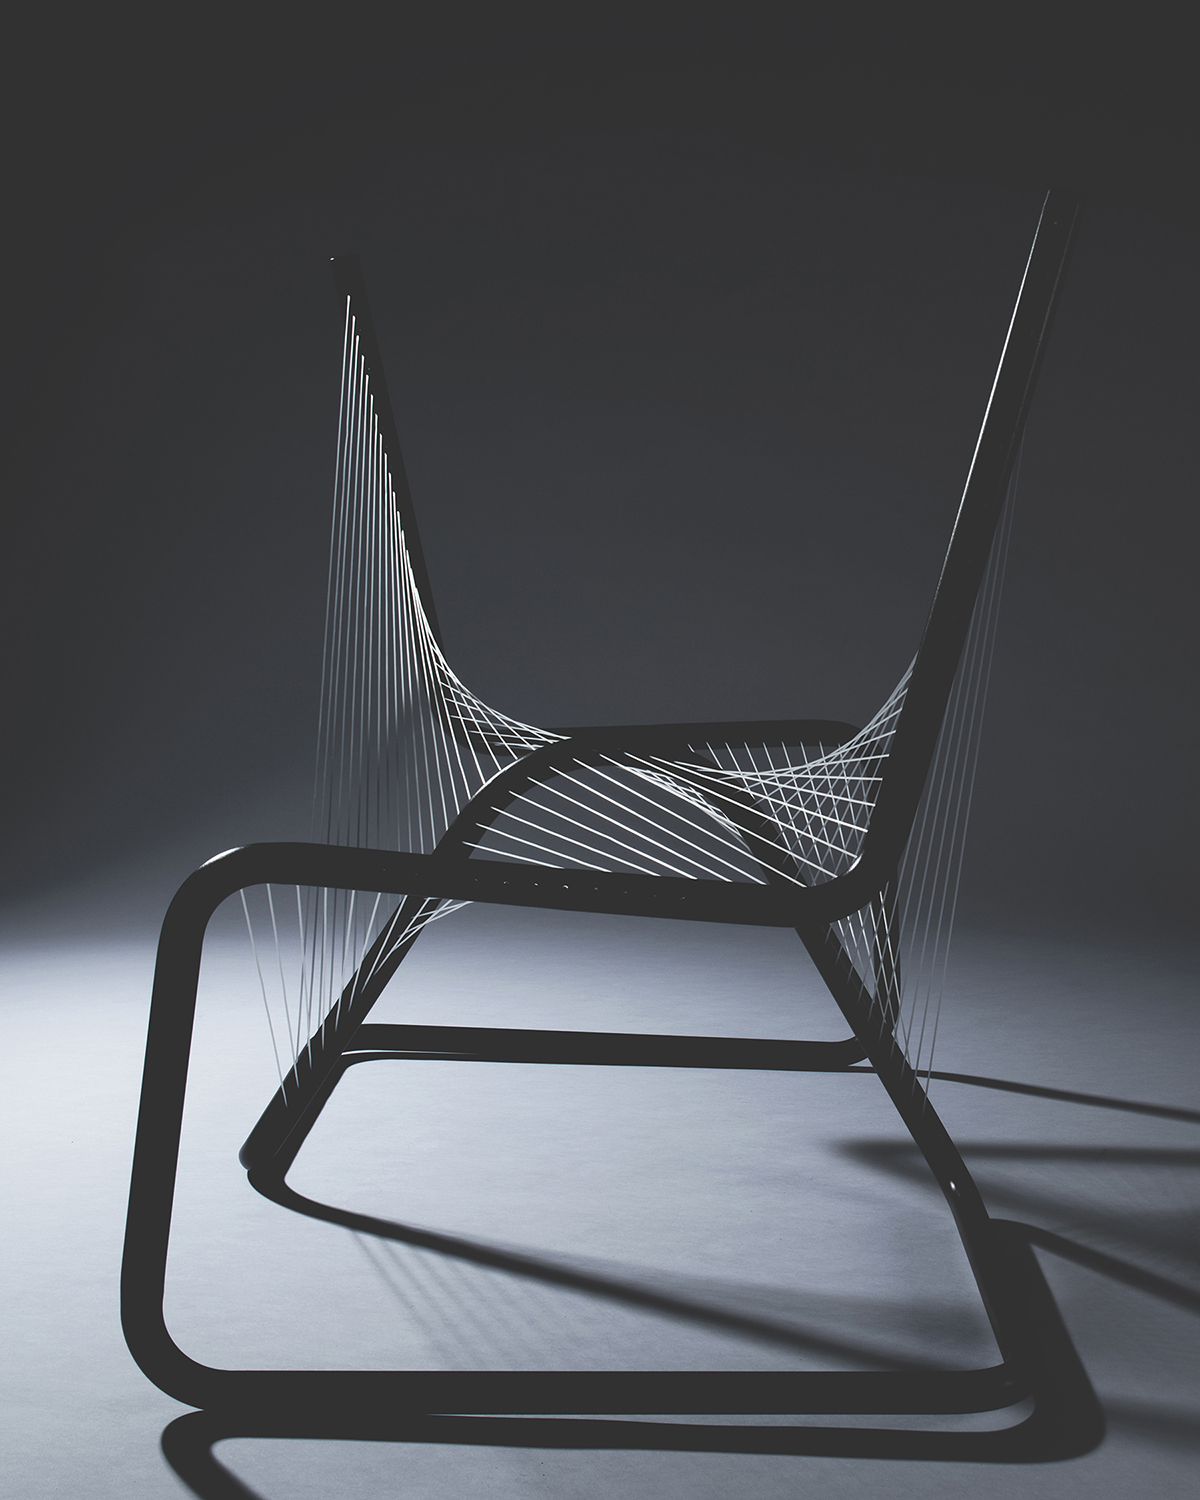 a chair made for two people